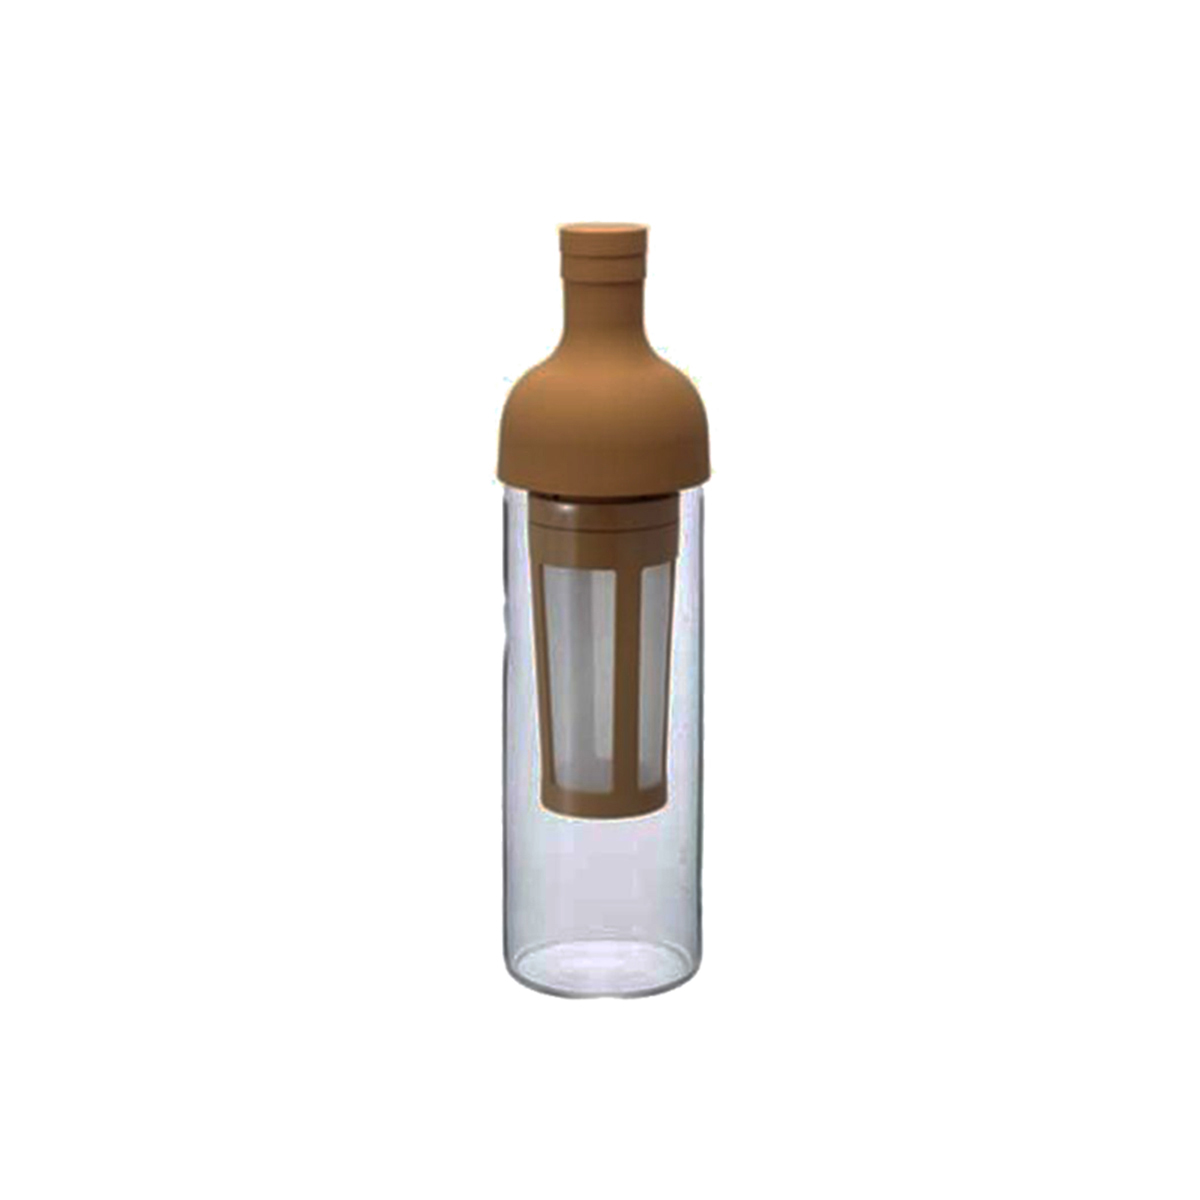 Hario Cold Brew Filter in Bottle Moca FIC-70-MC